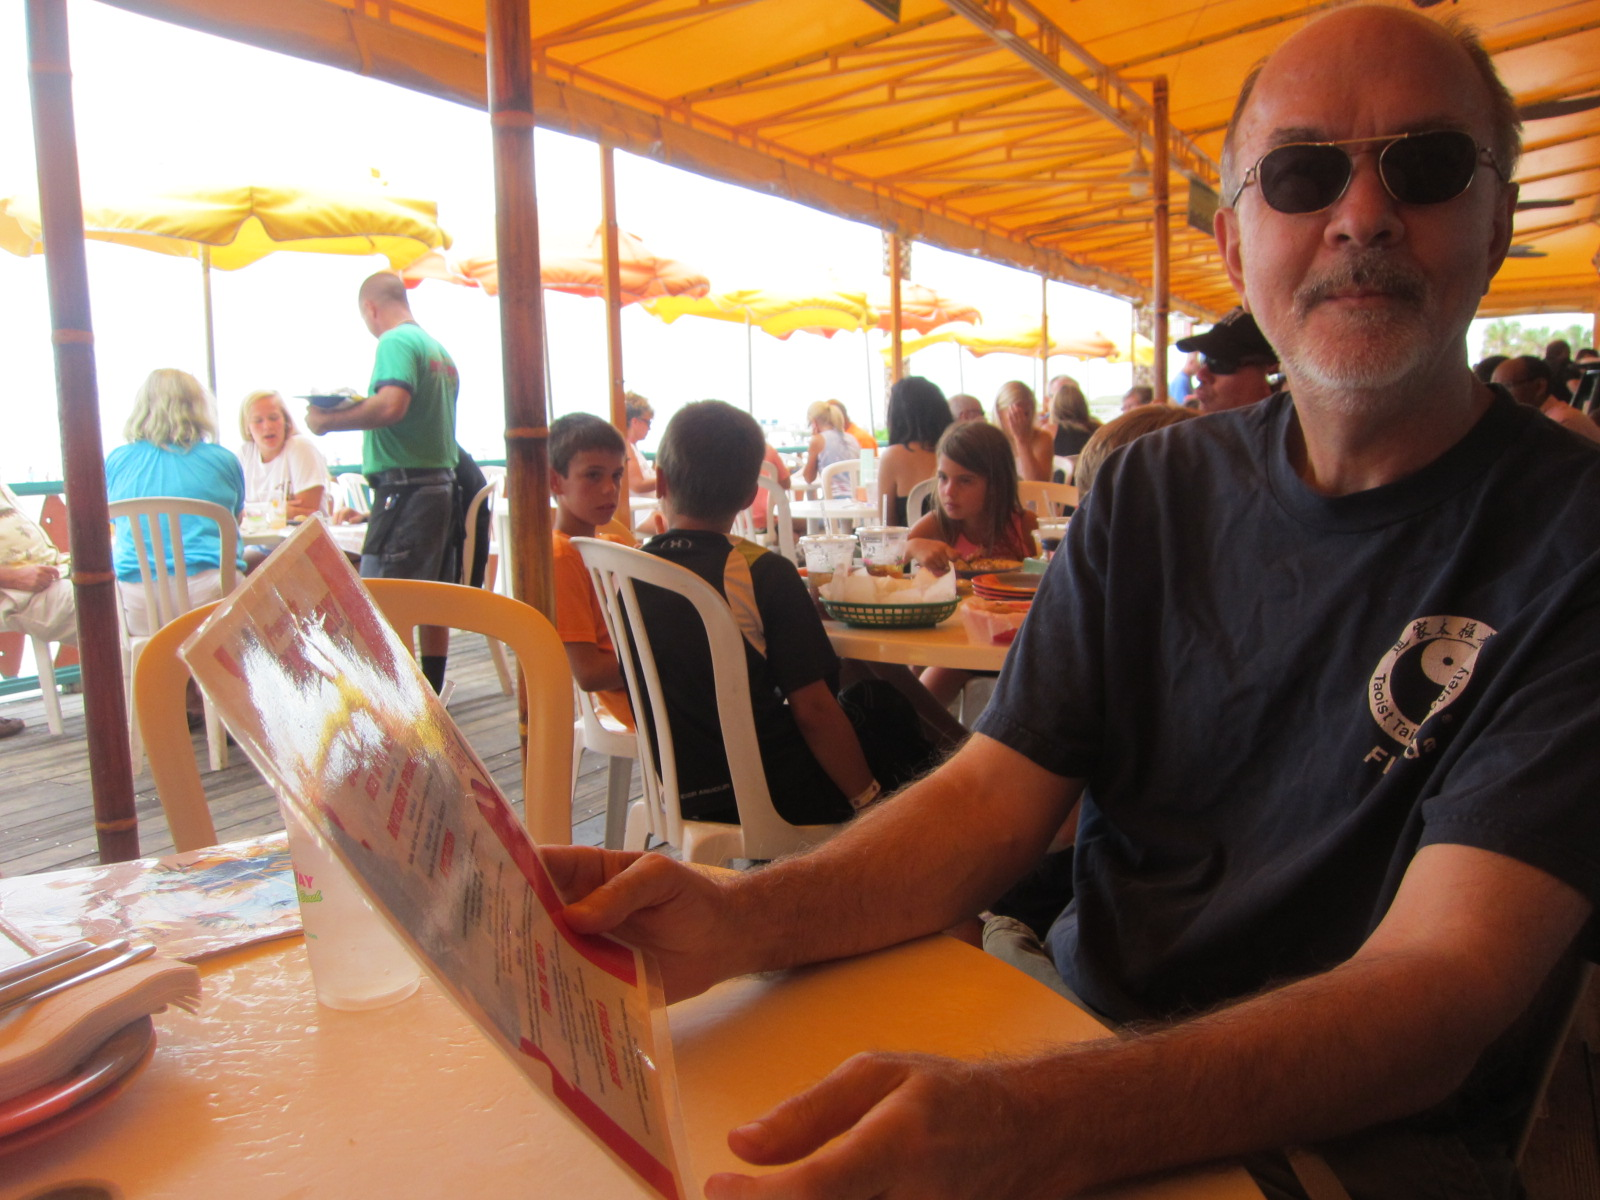 Fred, holding his menu up, three of the urchins are visible in the background.